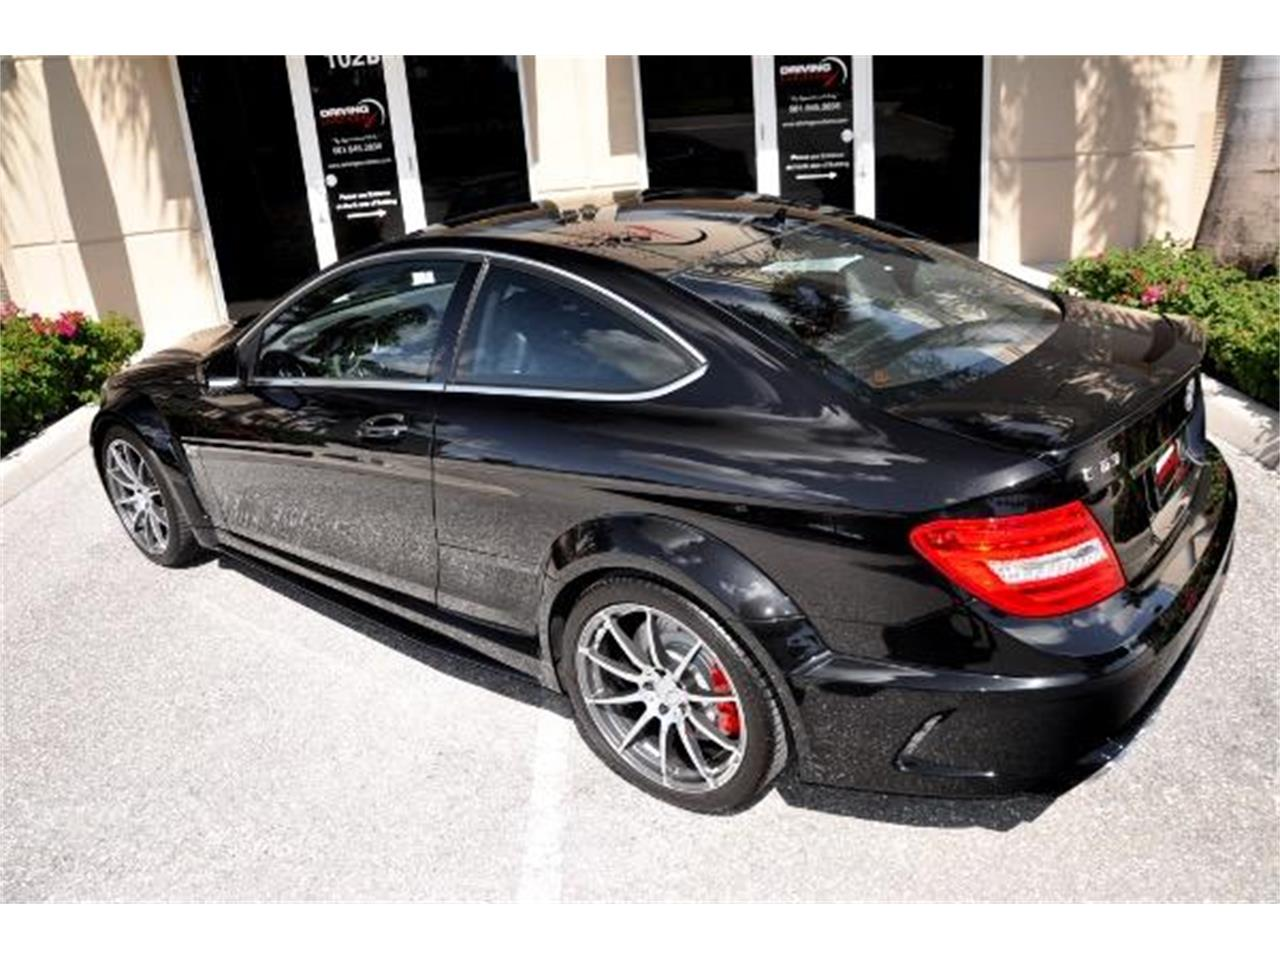 2013 Mercedes-Benz C63 AMG for sale in West Palm Beach, FL – photo 29